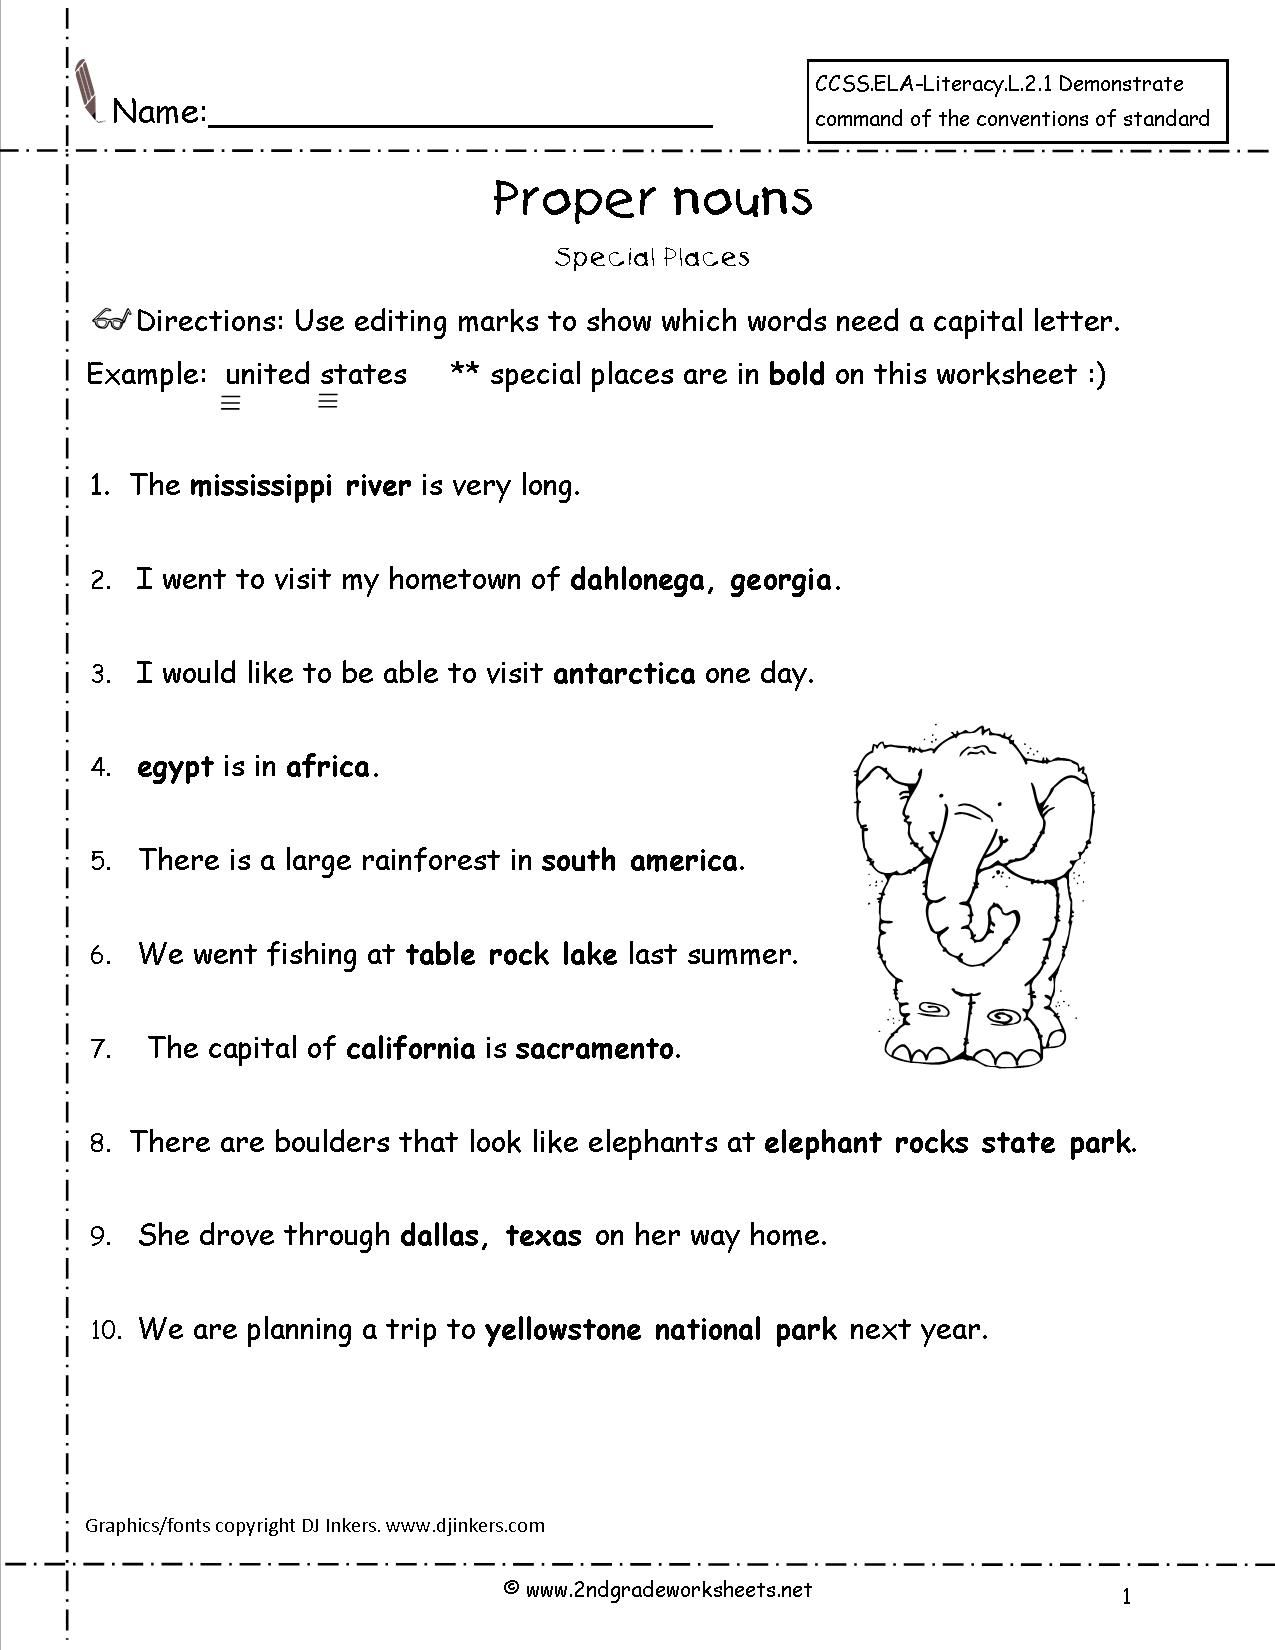 Worksheets Noun Worksheets For 1st Grade proper nouns worksheet languageliteracy pinterest worksheet